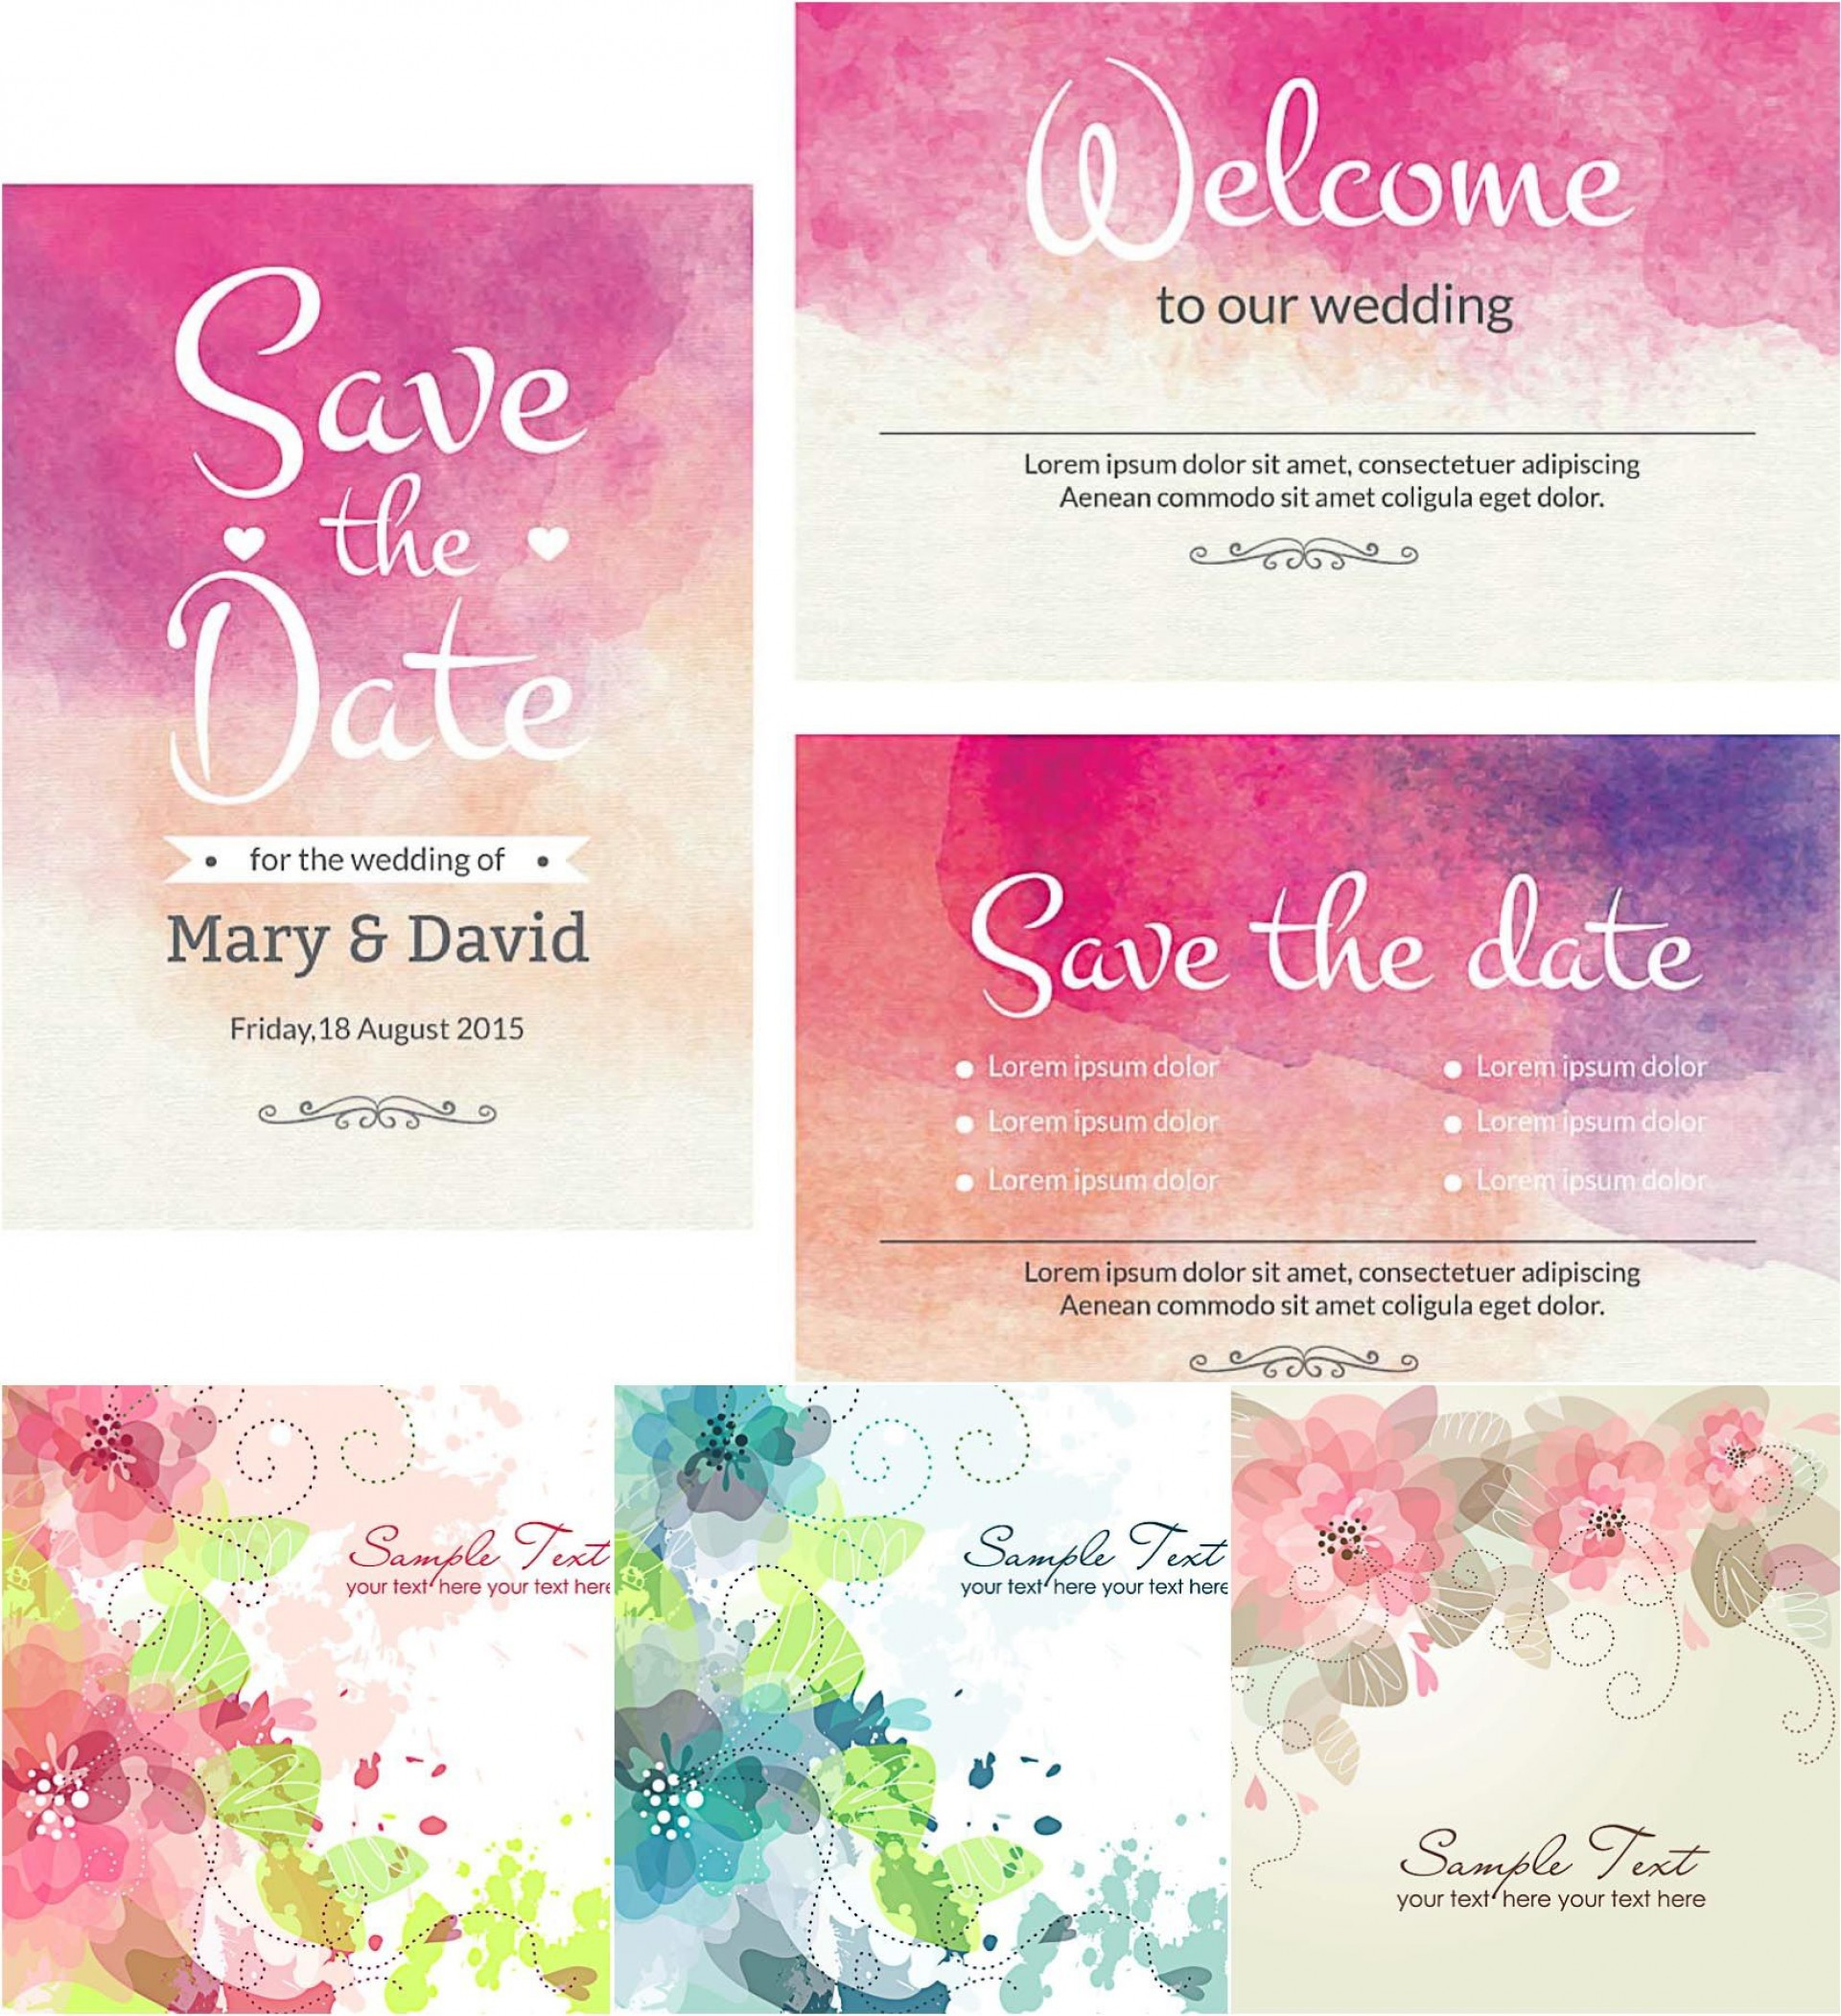 008 Amazing Free Download Invitation Card Design Software Highest Clarity  Wedding For Pc Indian1920